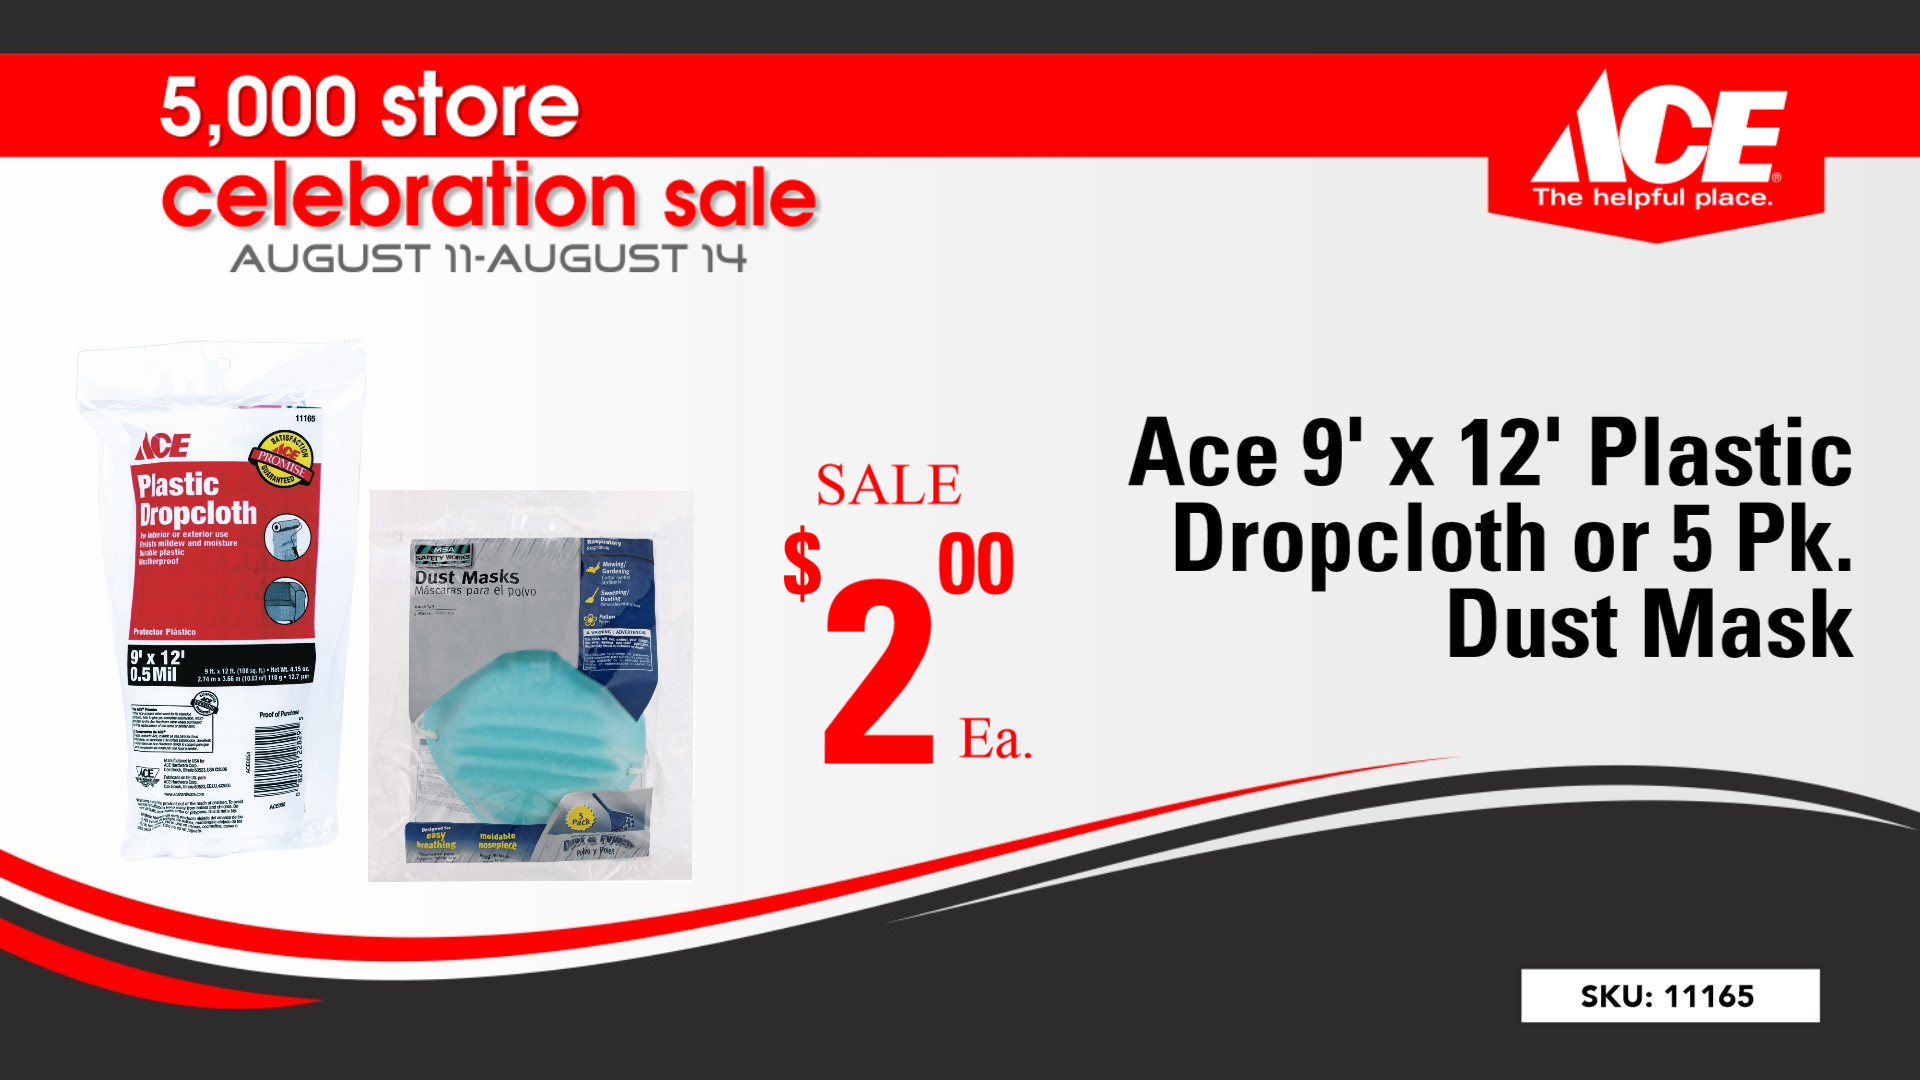 come to your local ace hardware in charlevoix on august 11 through august 14 and celebrate our store celebration with our huge sale on the following